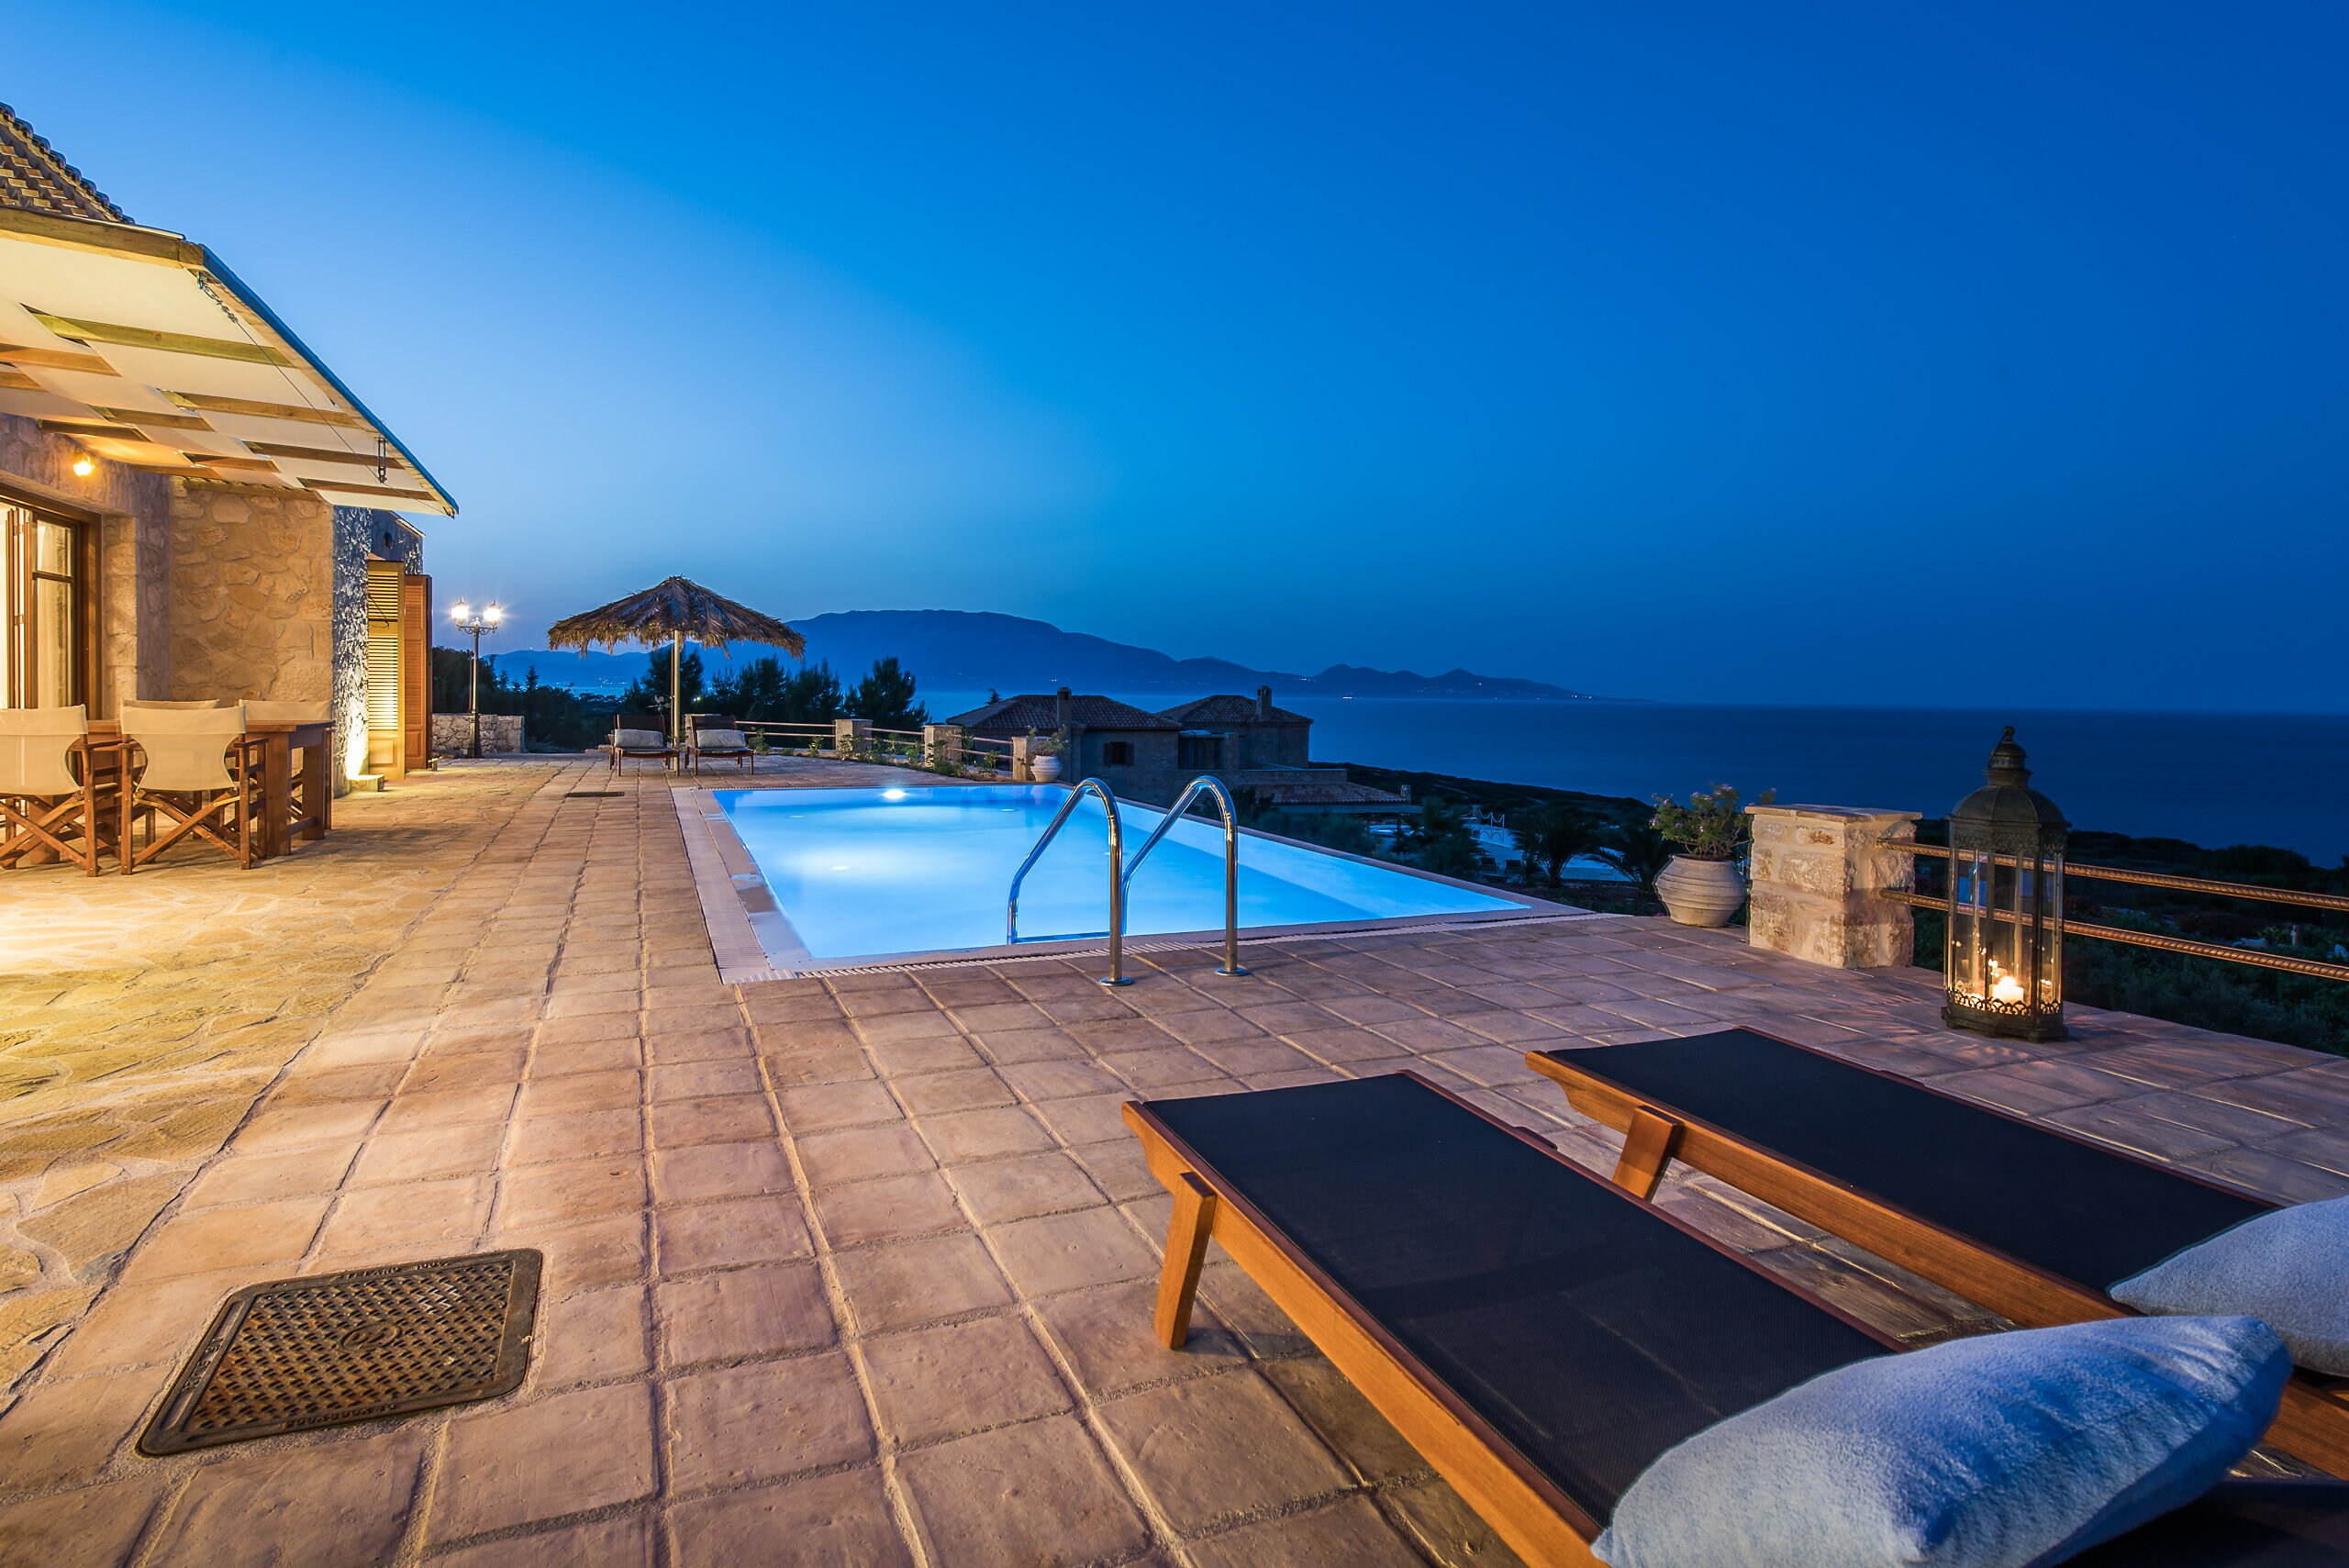 Luxurious villa with stunning views and pool